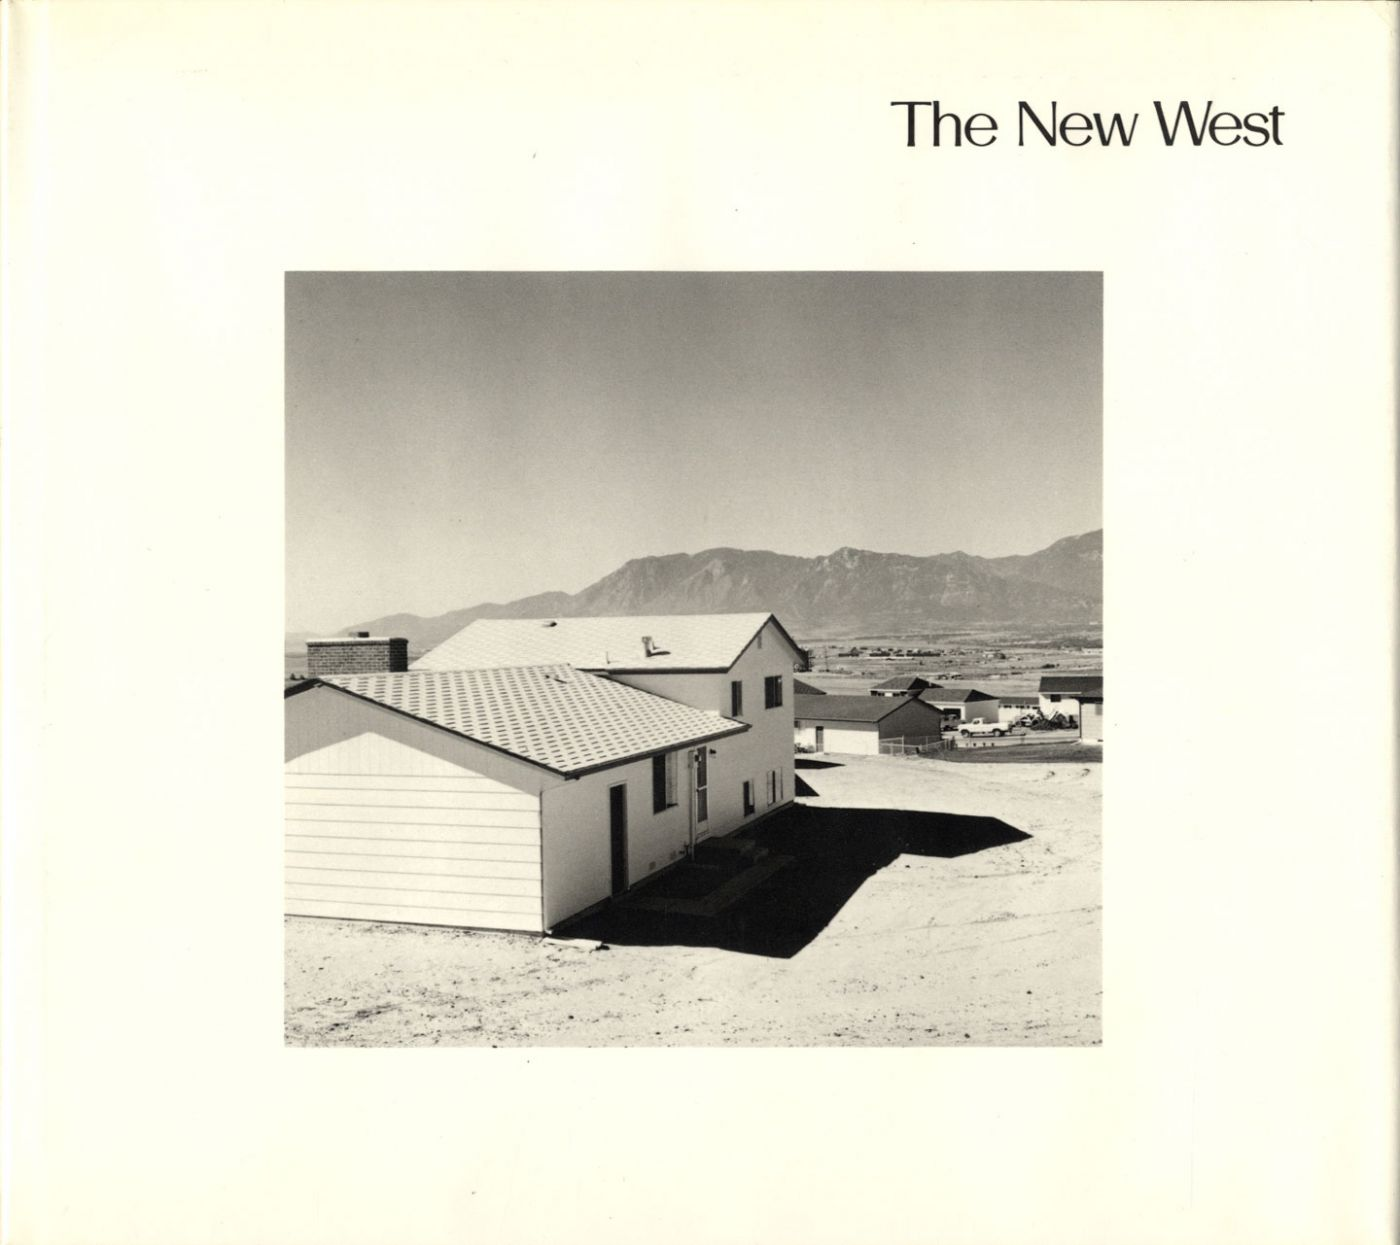 Robert Adams: The New West, Landscapes Along the Colorado Front Range (First Edition) [SIGNED]